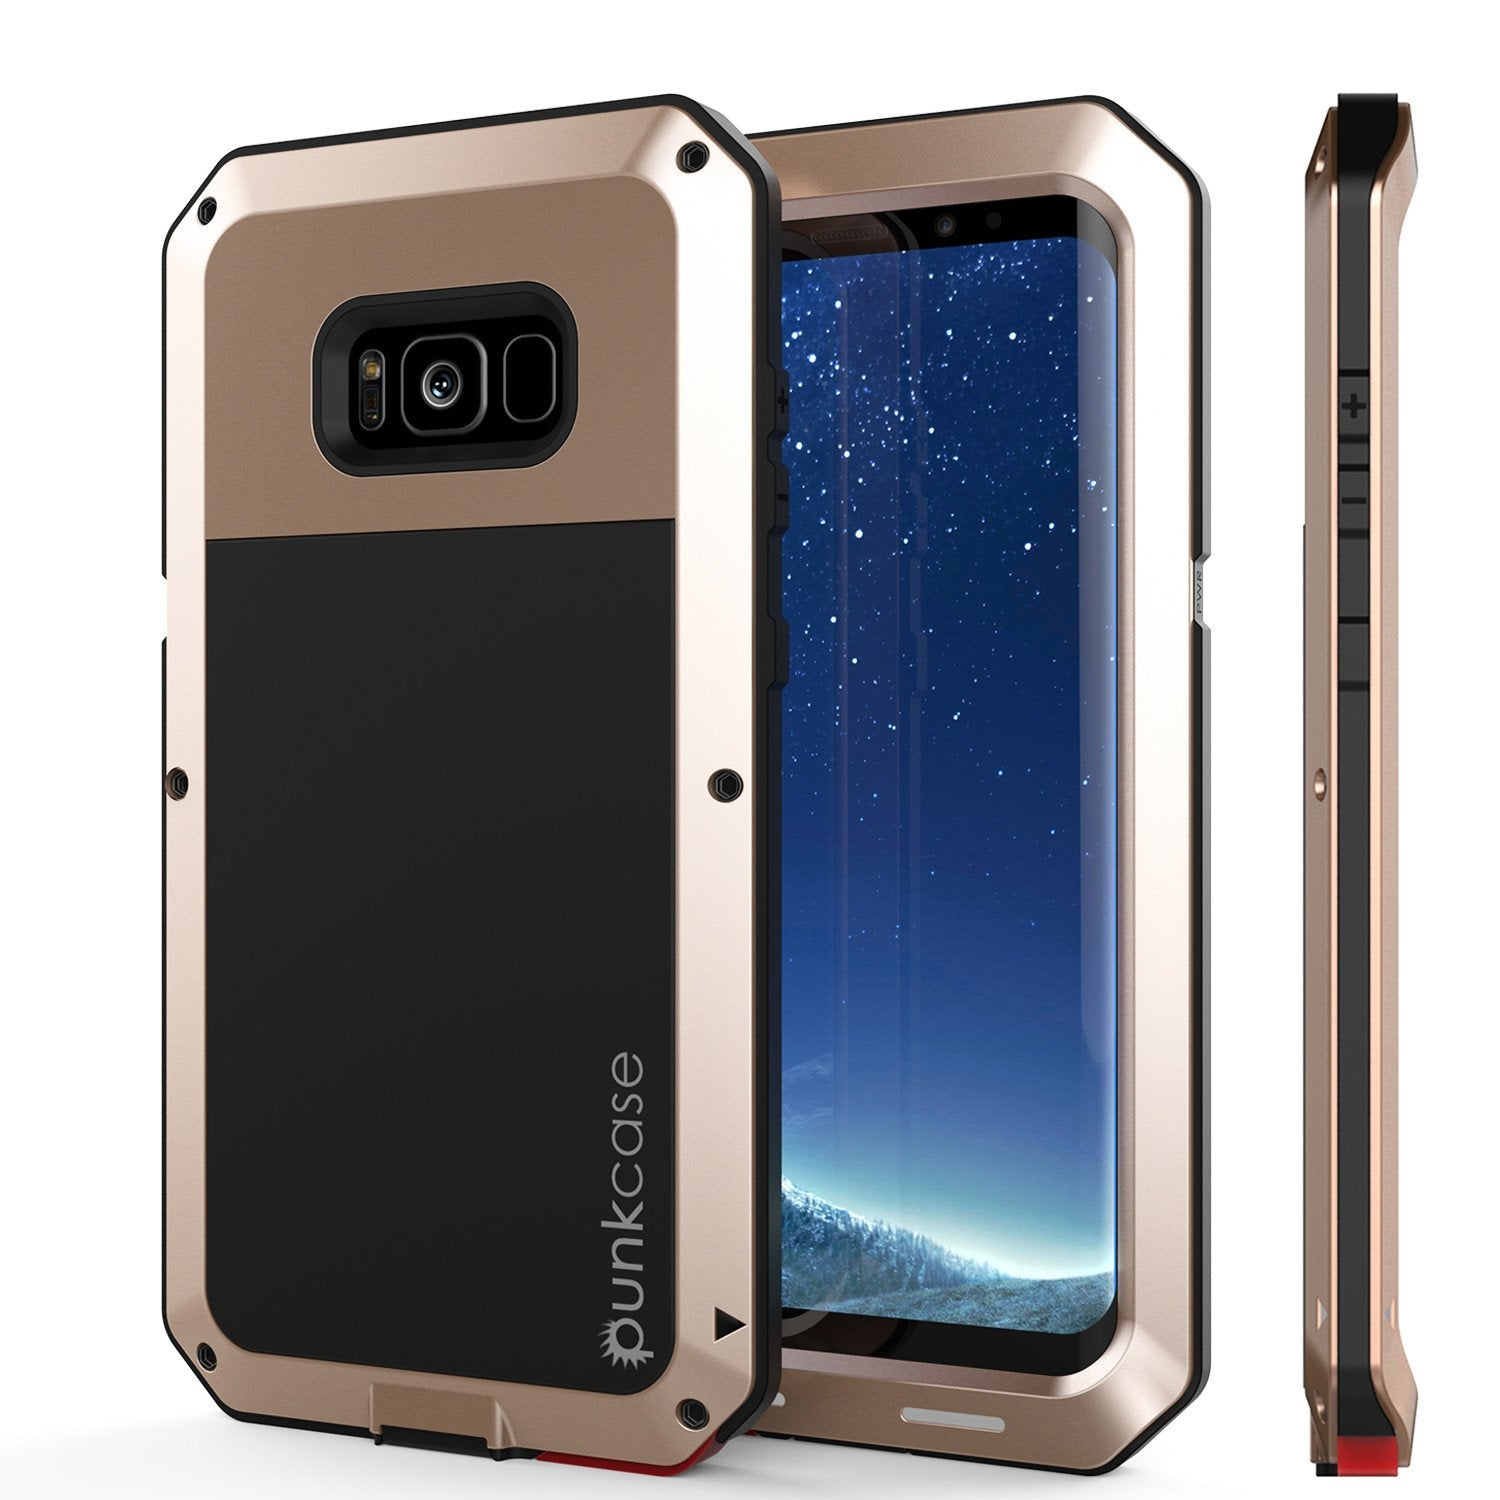 Galaxy S8+ Plus Metal Case, Heavy Duty Military Grade Rugged Armor Cover [shock proof] W/ Prime Drop Protection [GOLD]